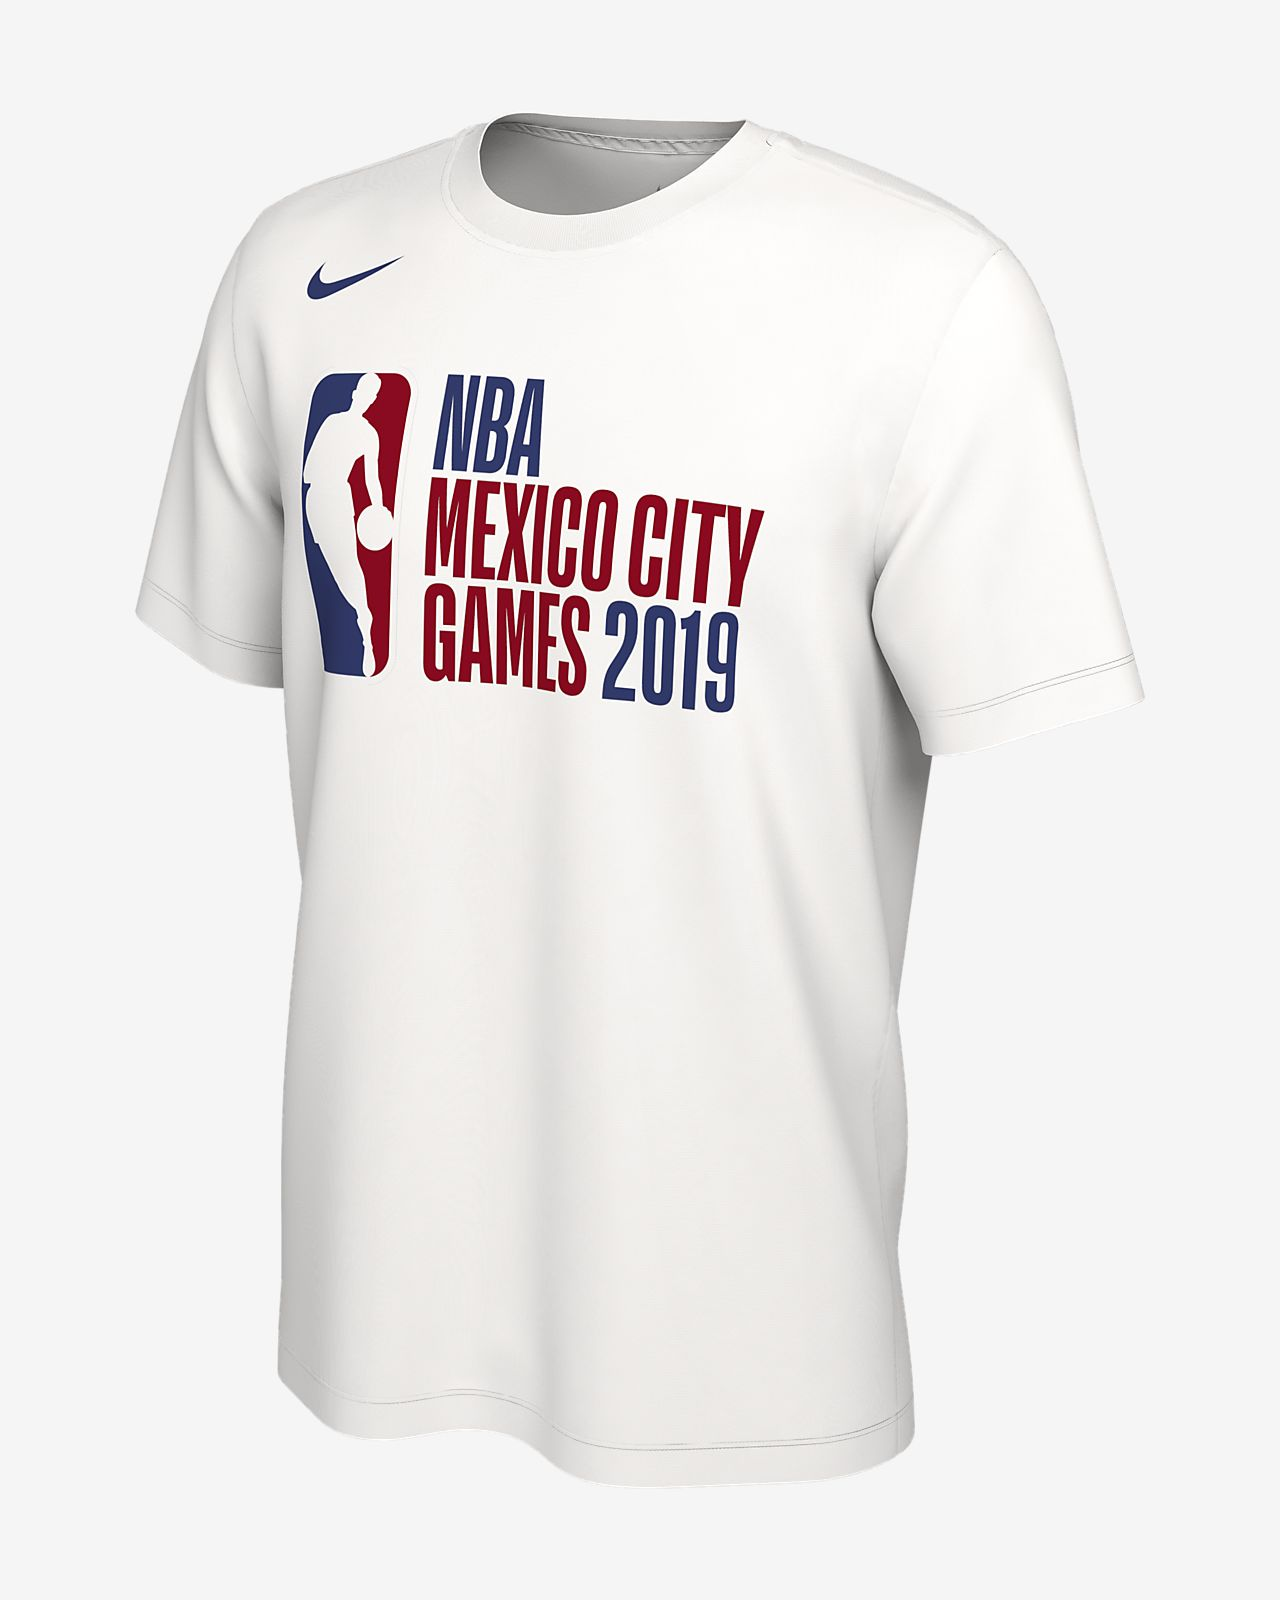 Playera Nike NBA para hombre Global Games Mexico City